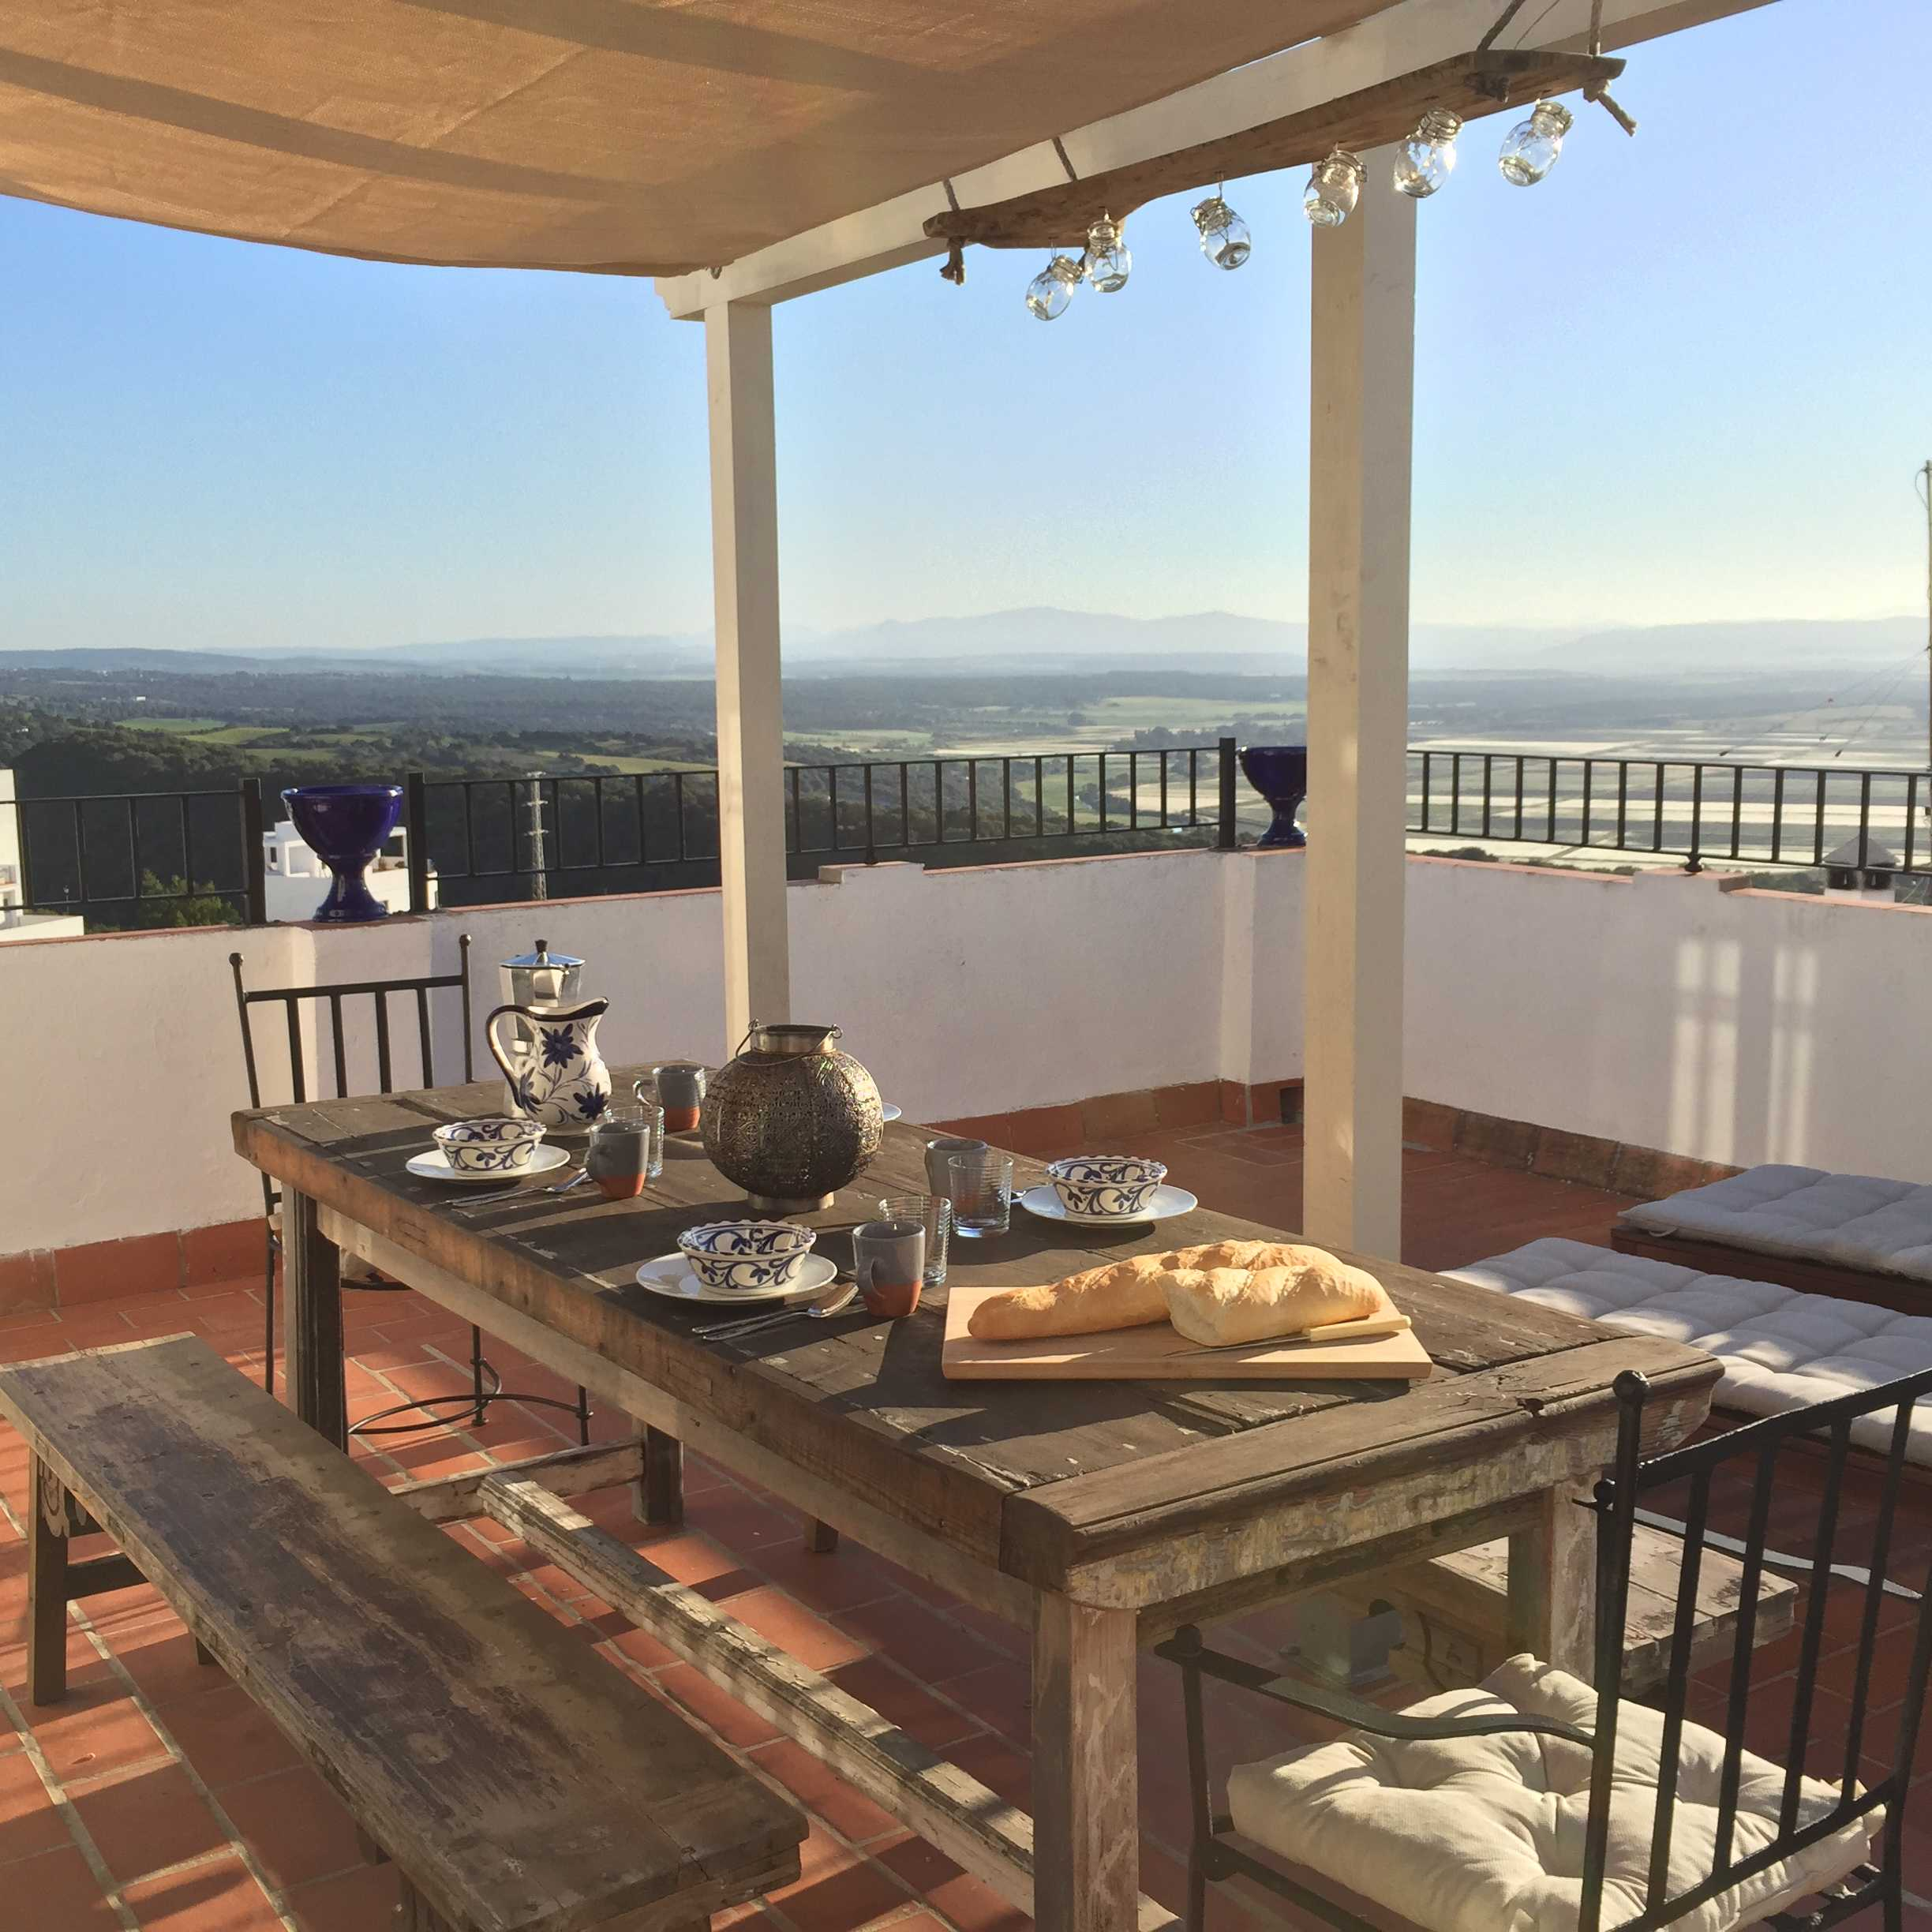 Enjoy a lovely breakfast or dinner out on the terrace